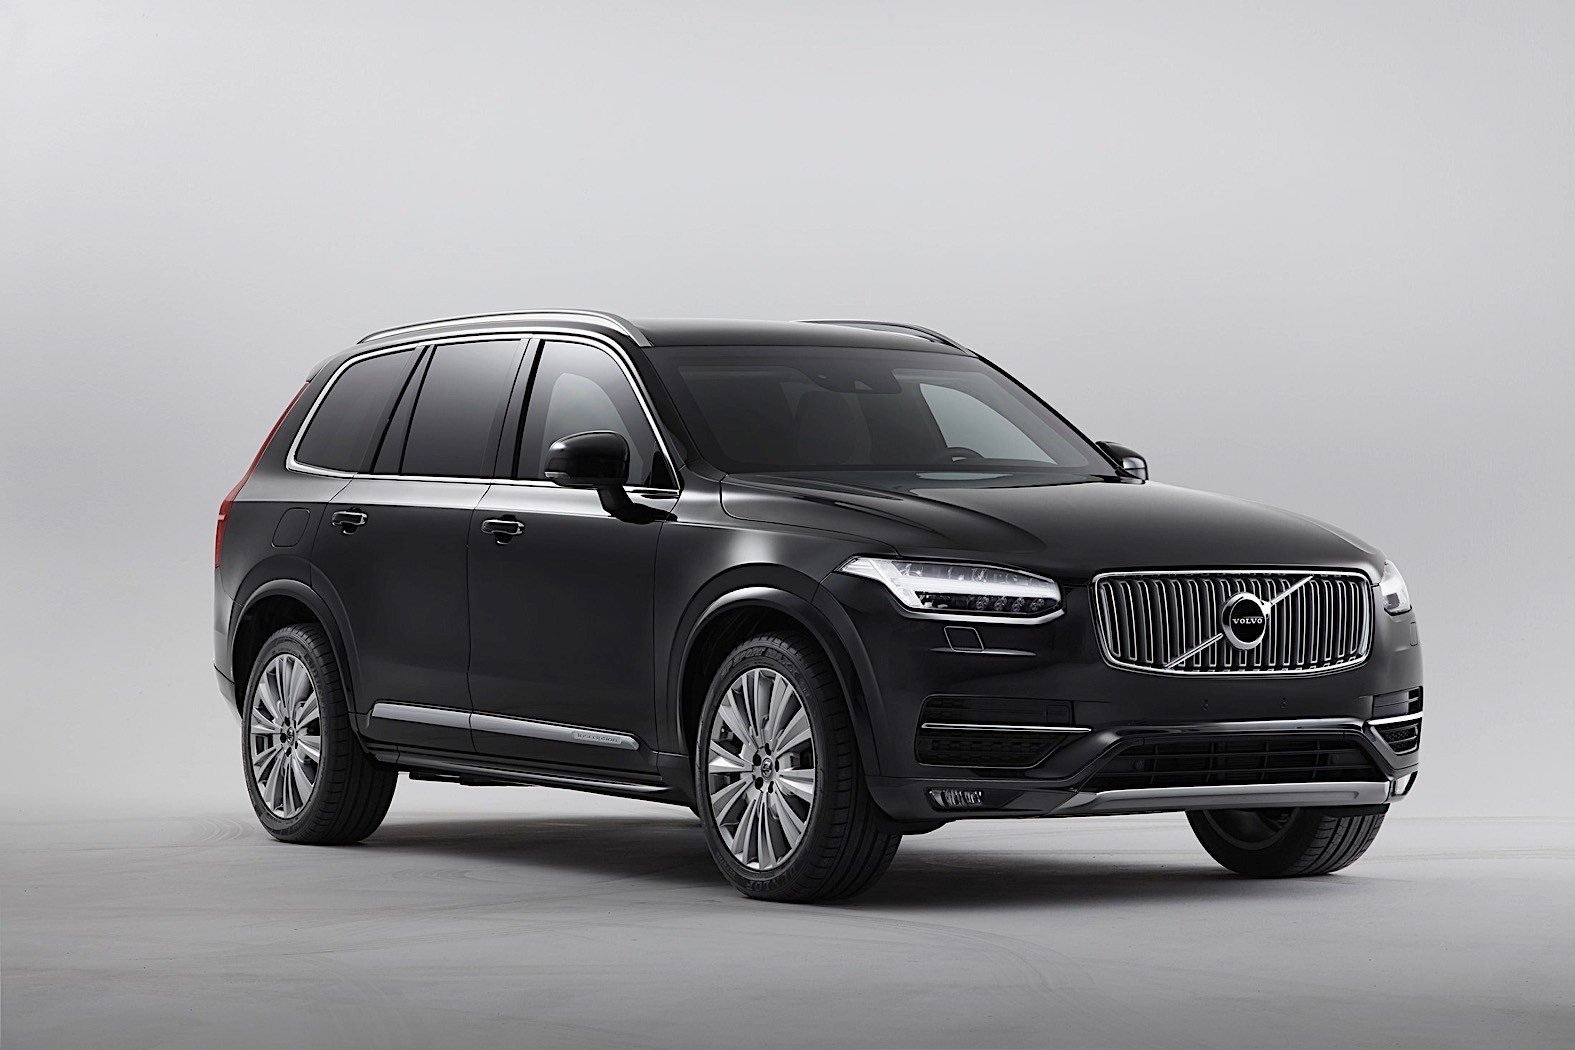 Volvo Xc90 Commercial >> 2015 Volvo XC90 Rendered as Pickup Truck from Your Nightmares - autoevolution